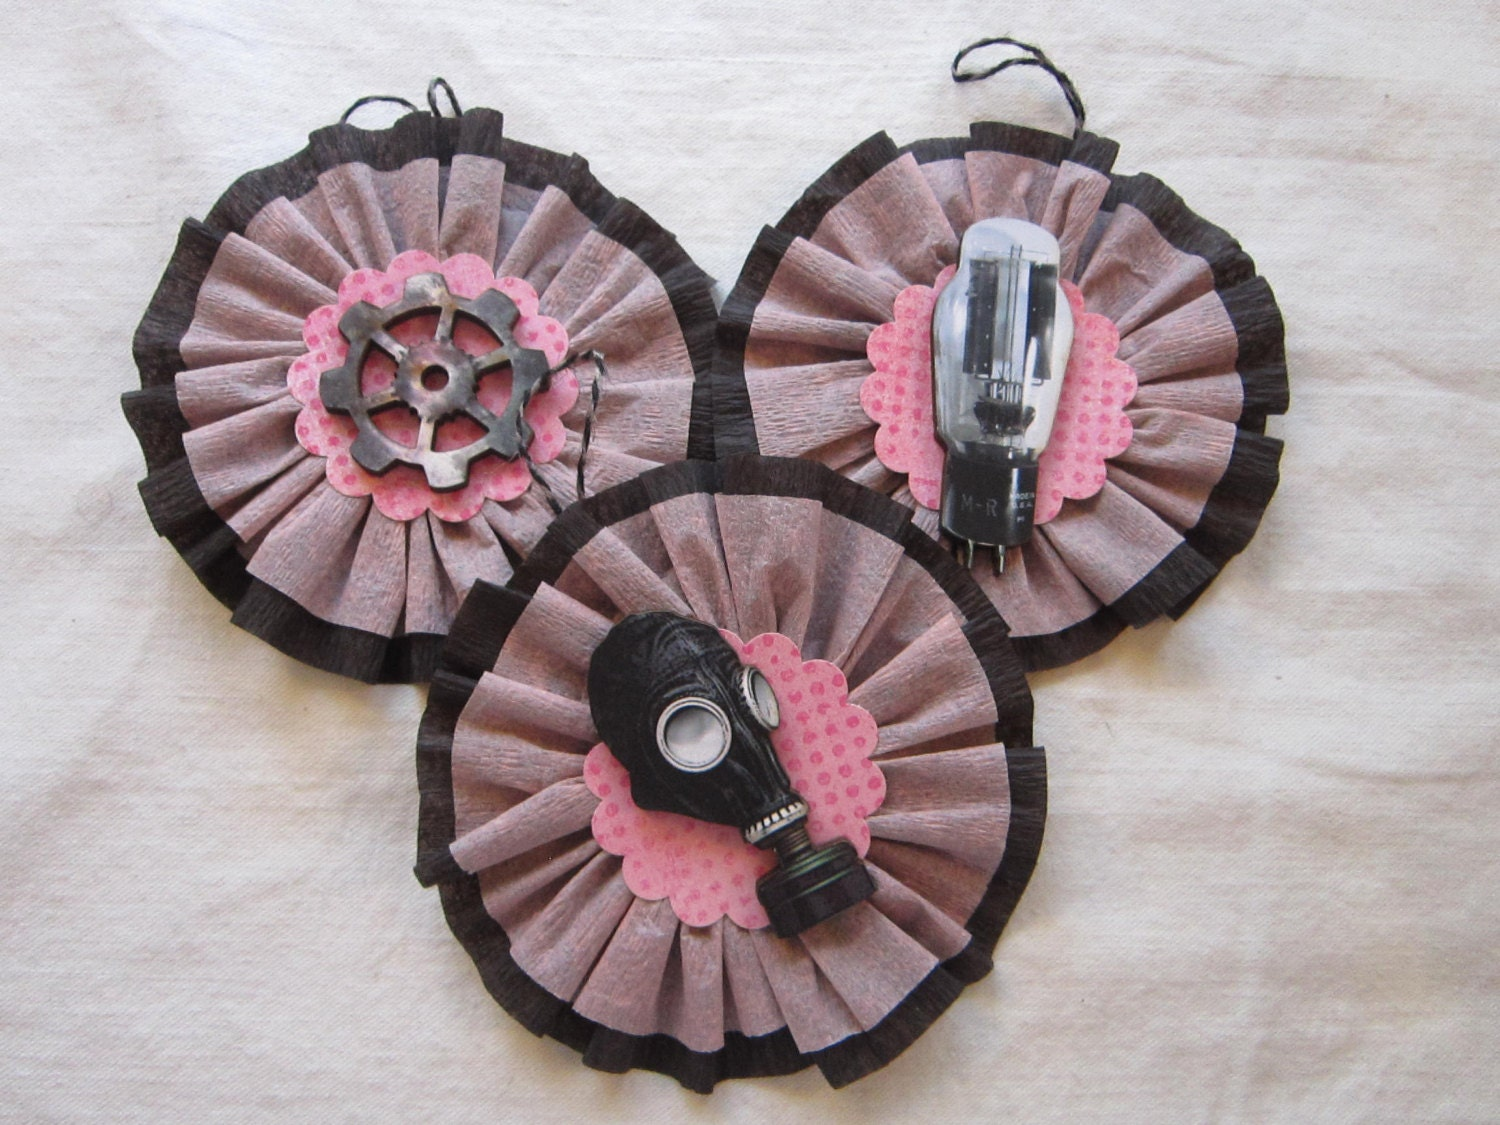 3 handmade ornaments - STEAMPUNK trio - pink and black crepe paper